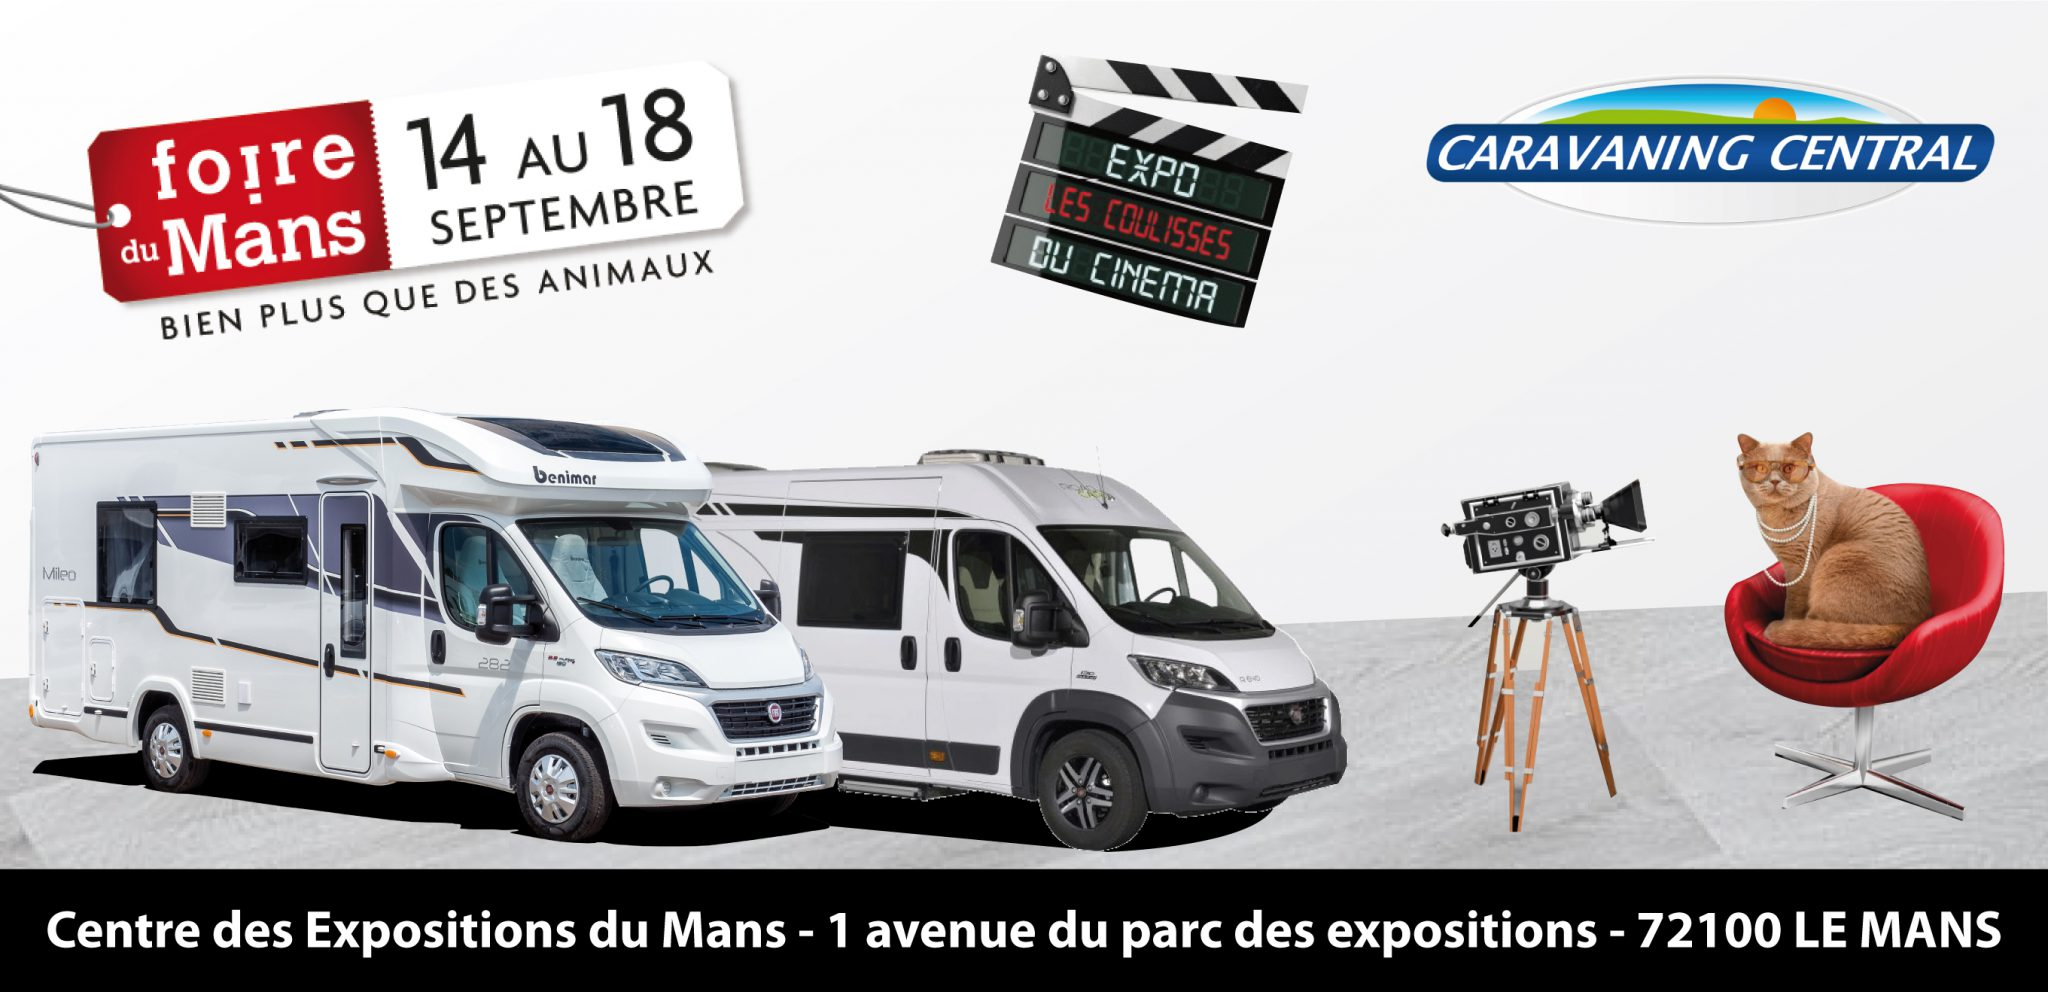 rendez vous la foire du mans du 14 au 18 septembre caravaning. Black Bedroom Furniture Sets. Home Design Ideas